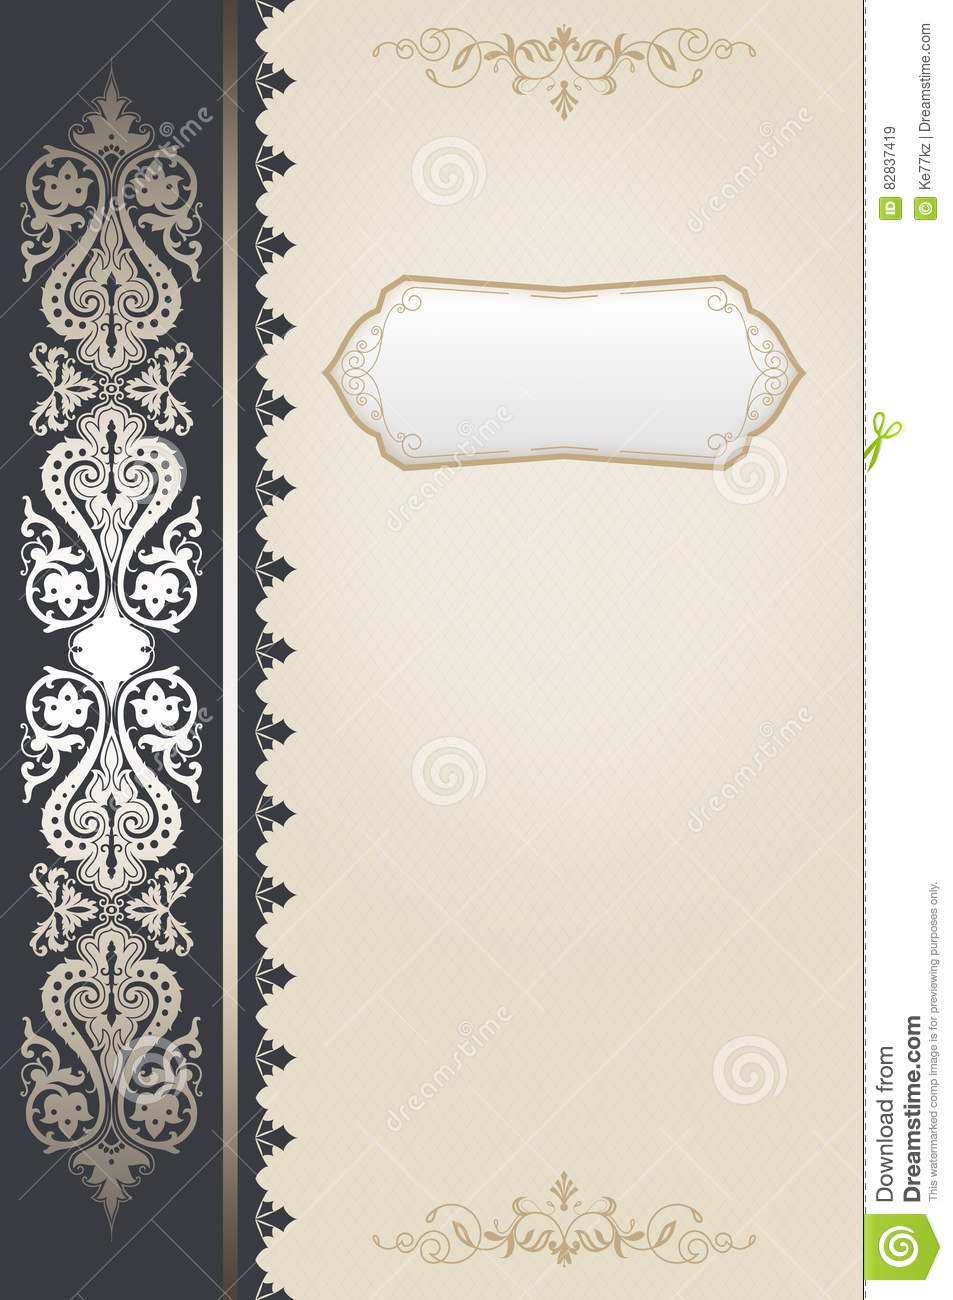 Vintage Book Cover Background : Decorative vintage background book cover design stock